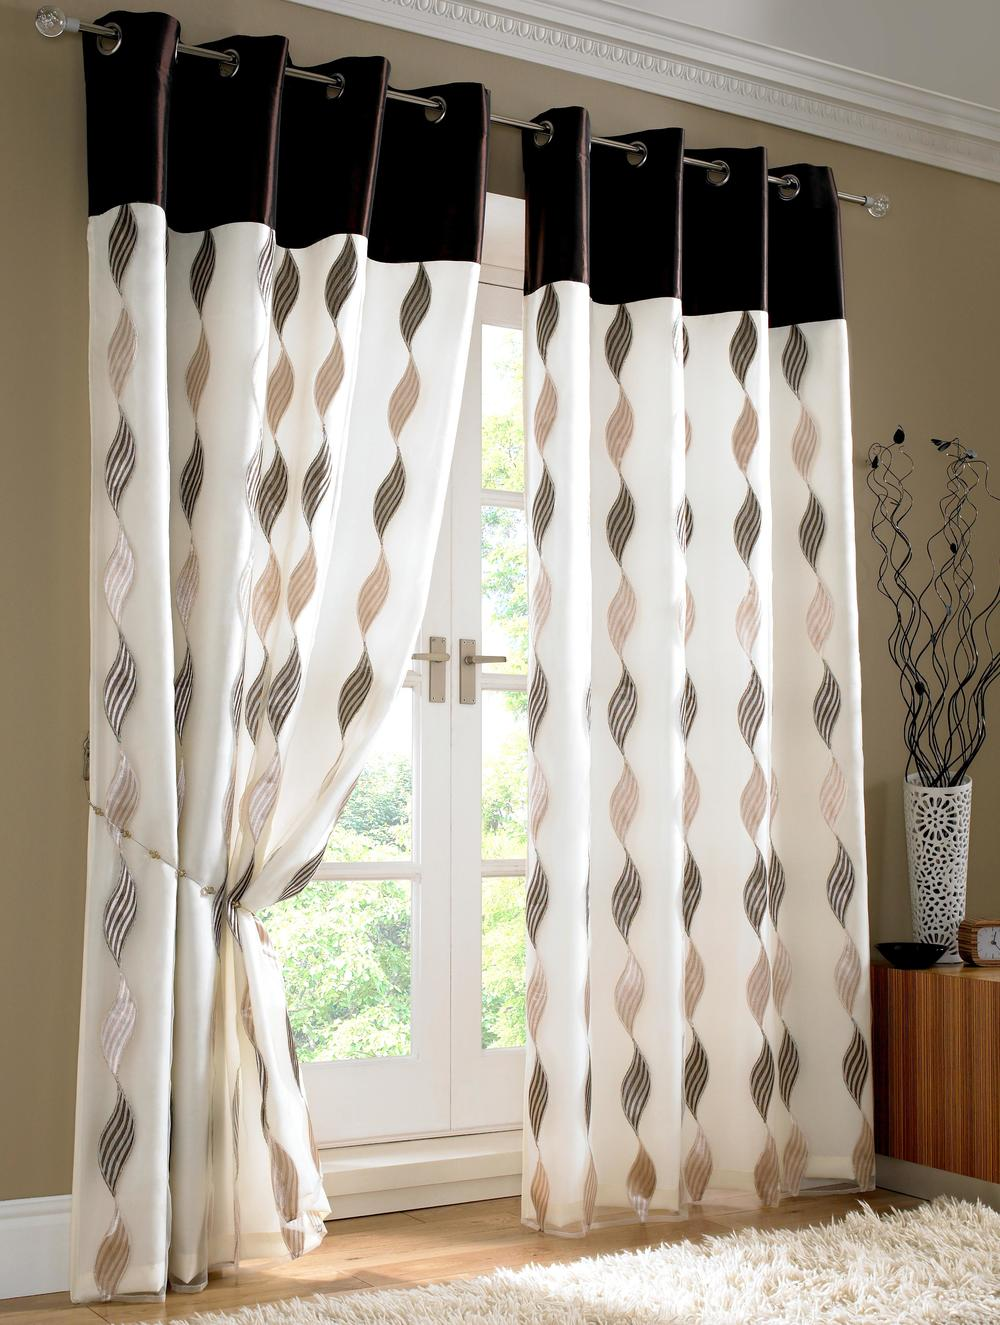 contemporary-curtain-design.jpg